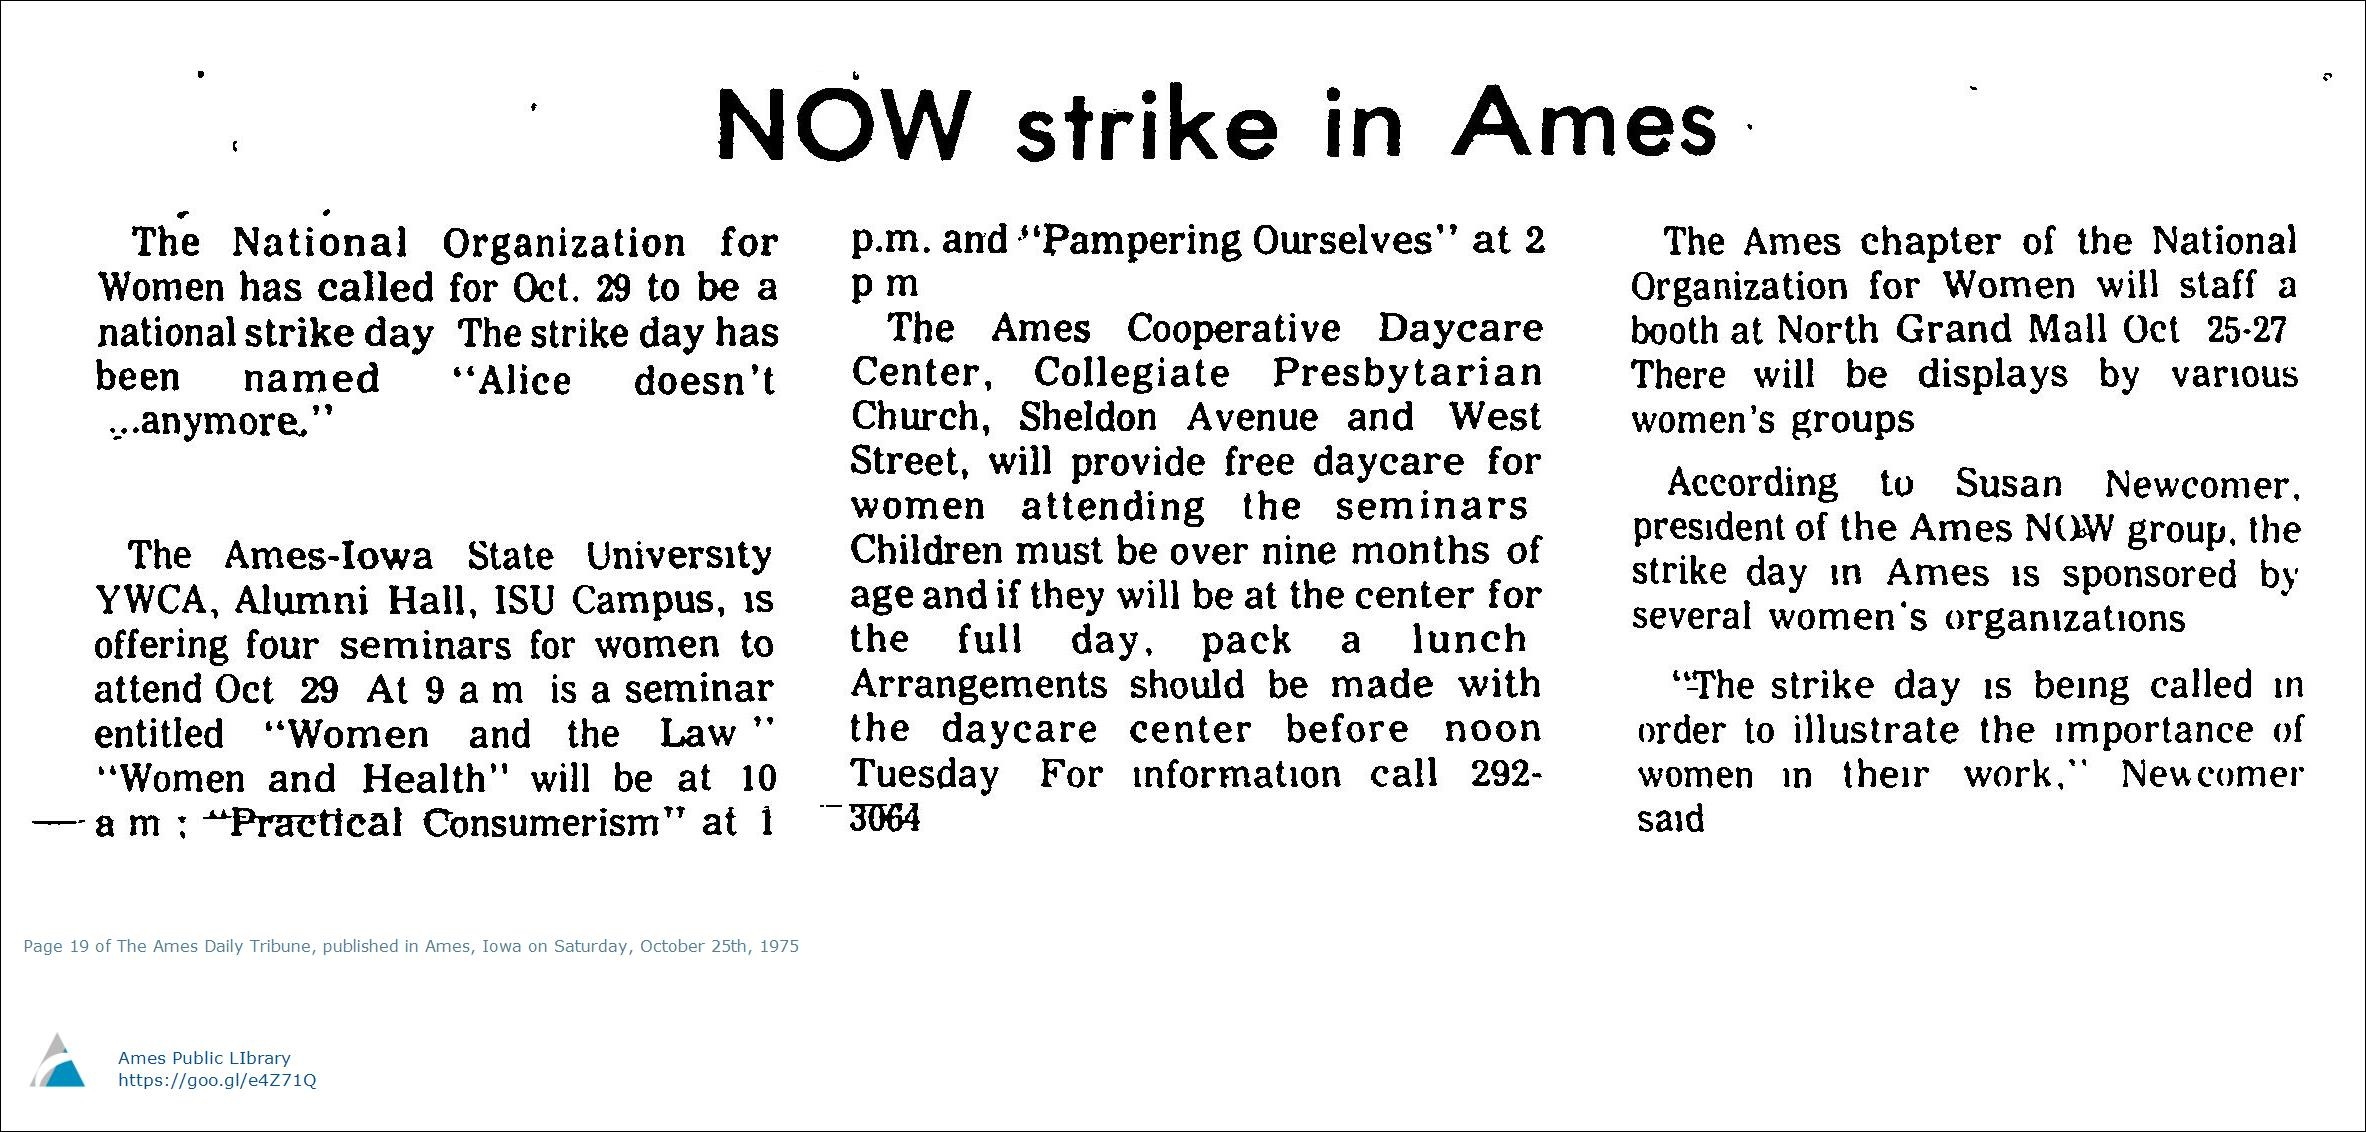 Image from page 19 of the Ames Daily Tribune, October 25th, 1975.